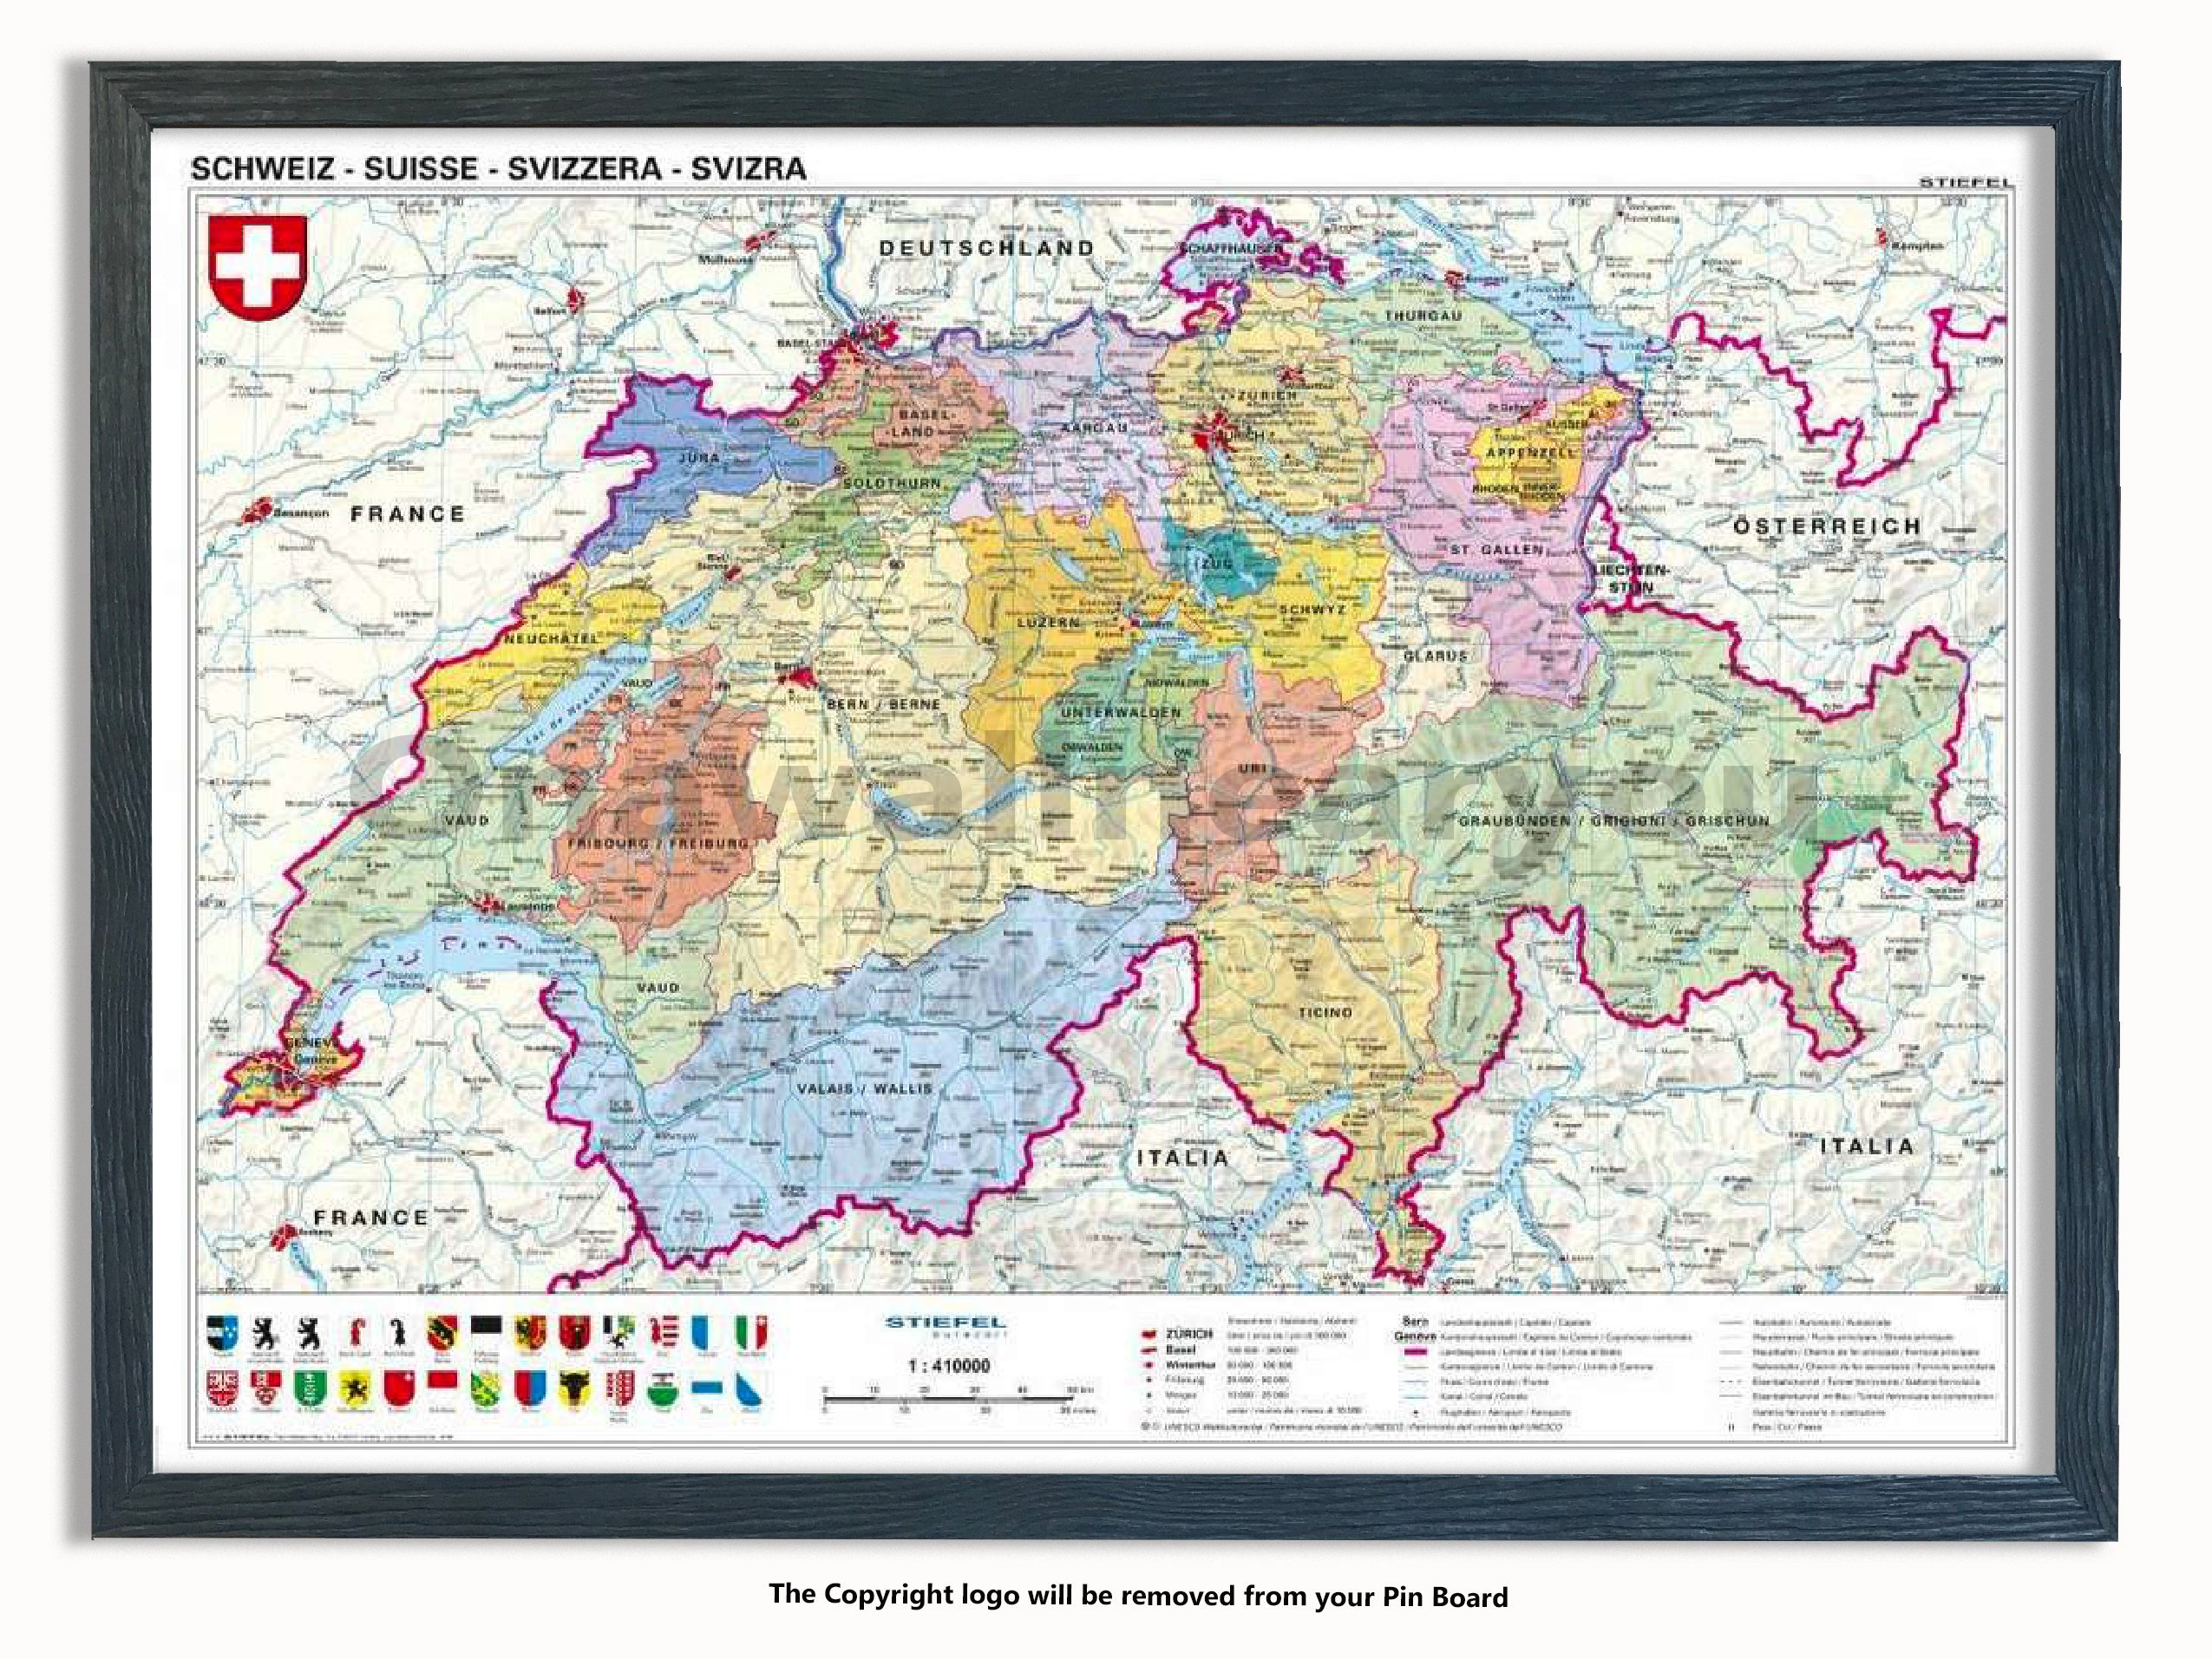 Laminated Posters Framed - Map Of Switzerland - Push Pin Memo Notice Board - Black Driftwood Effect - Matt Finish - Measures 96.5 x 66 cms (38 x 26 Inches - Approx)